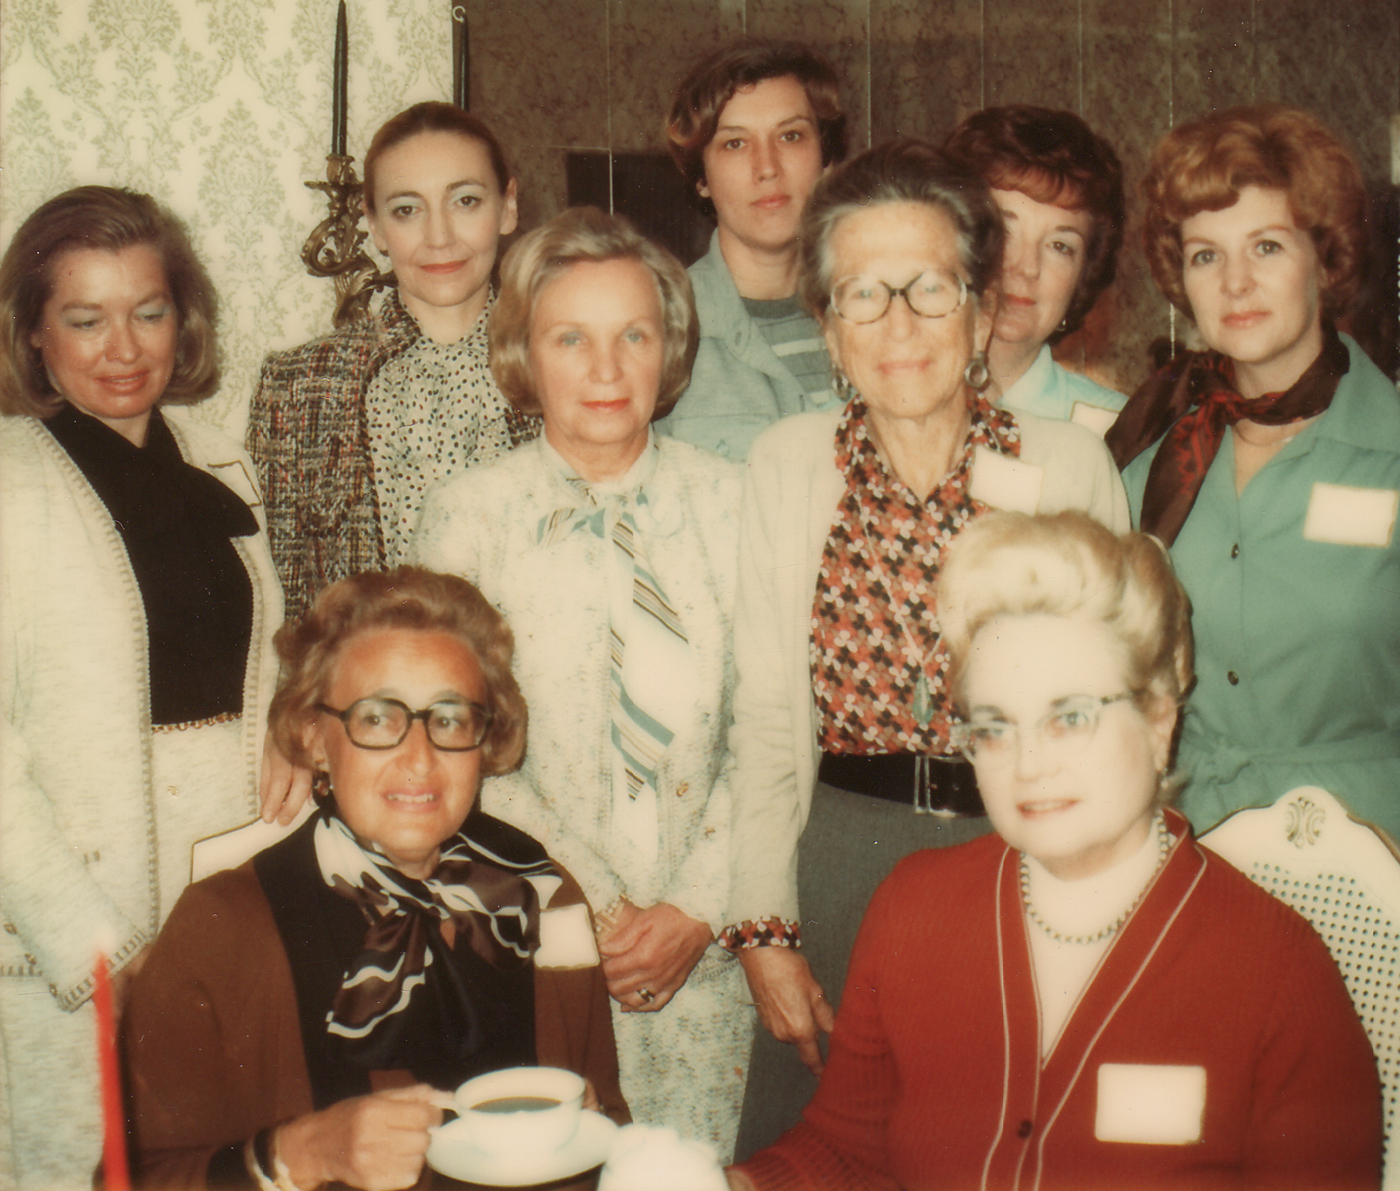 Symphony League Bay Area founders pose for a photo at the initial meeting of the chapter Jan. 17, 1976 at the home of Mrs. Brian Merrill, Clear Lake City. They are, from left, seated, Mrs. Alfred Neumann (Selma); Mrs. Brian Merrill (Loraine); standing, Mrs. Donald W. Gibson (Pat); Mrs. William Calvin Cannon (Alda); Mrs. William O. Strong Jr. (Fran); Mrs. Martin Arisco (Peggy); Mrs. Howard T. Barkley Sr. (Margaret); Mrs. Buford A. Wells (Julia Stark); and Mrs. Lewis Wade (Joan).